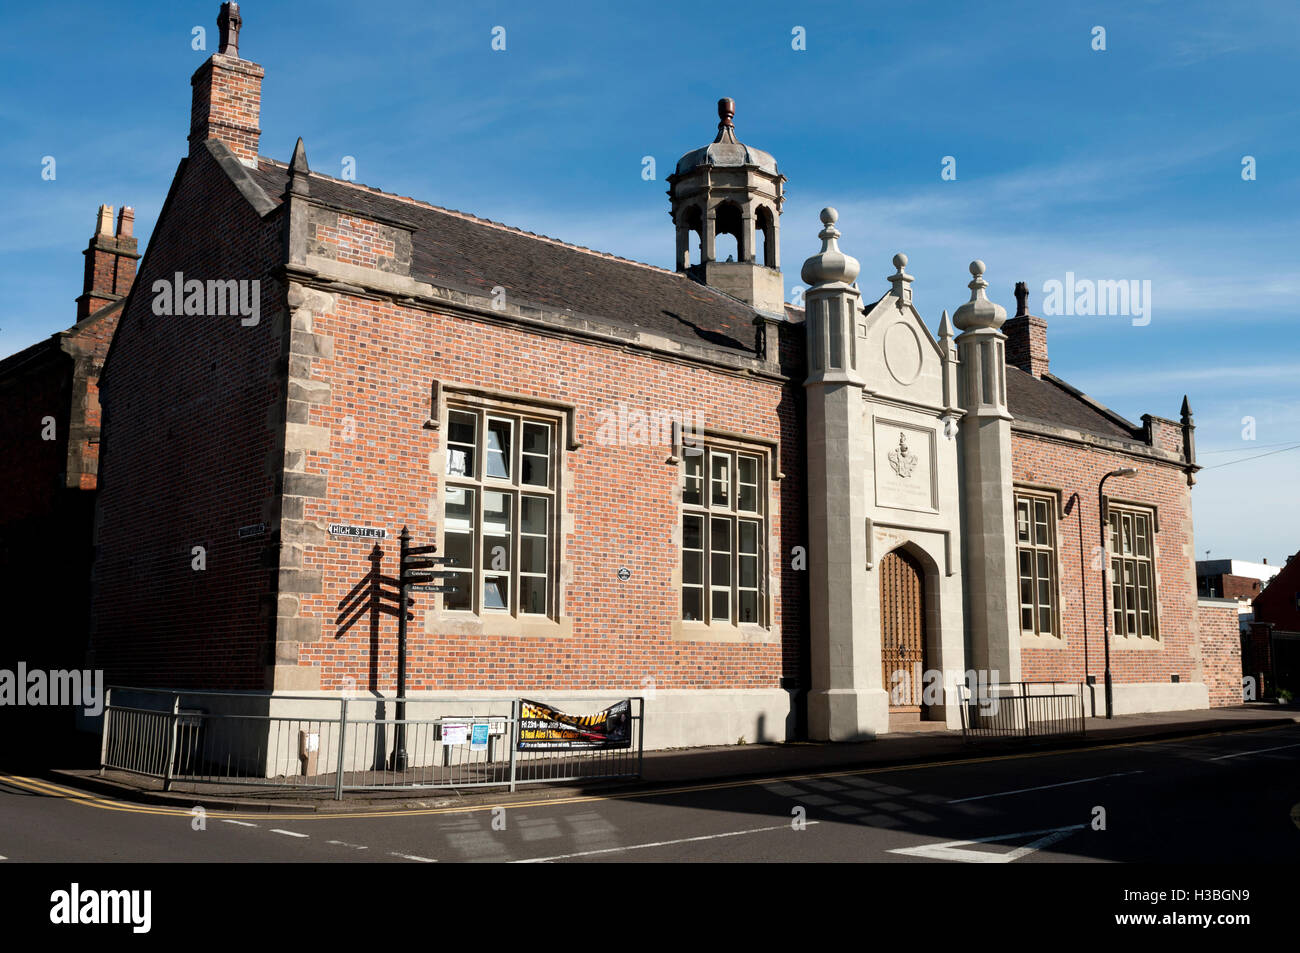 The Nethersole Centre (old school building) in High Street, Polesworth, Warwickshire, England, UK - Stock Image